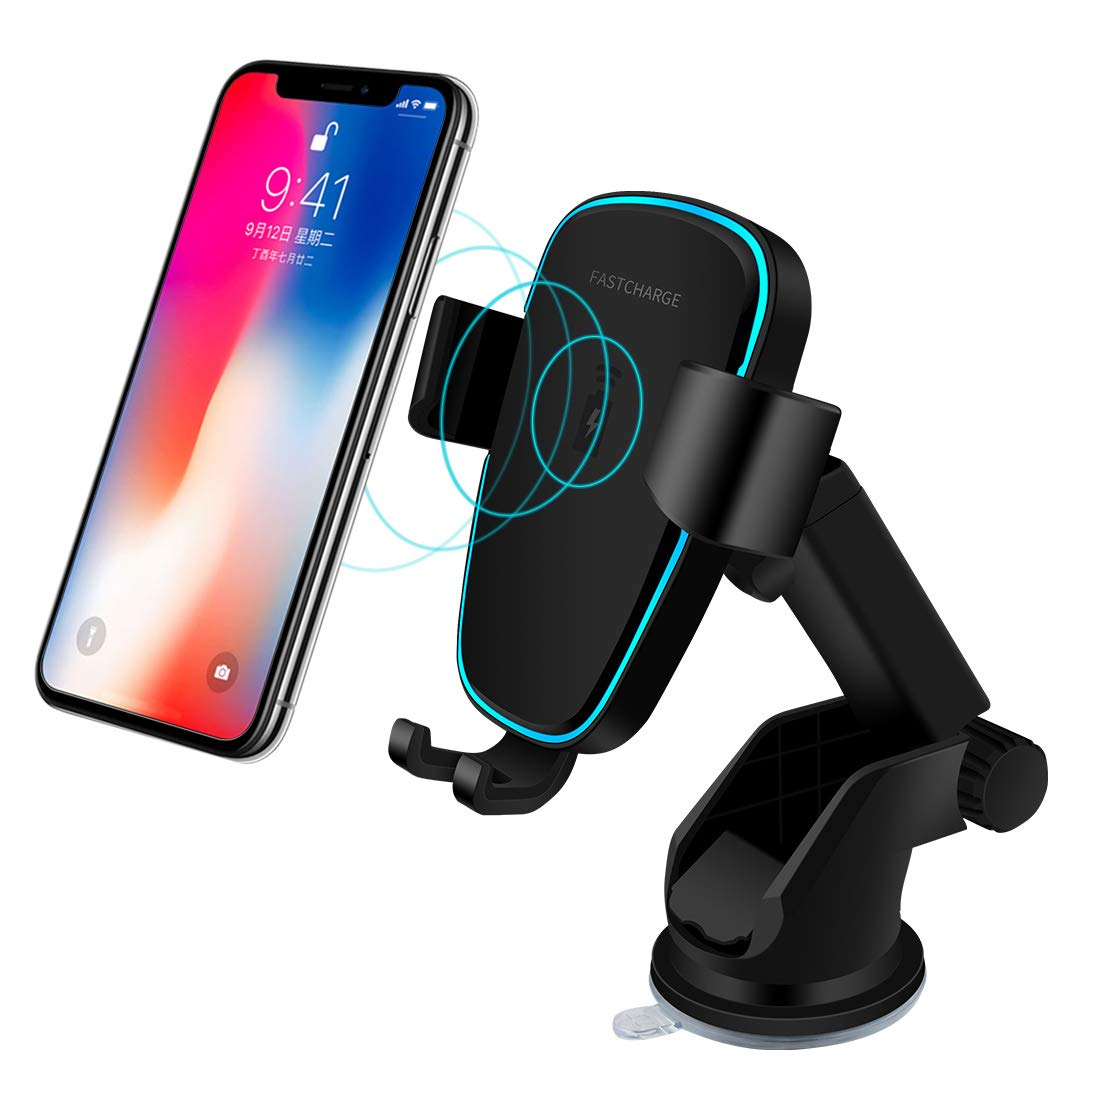 Wireless Car Charger, Fast 10W Wireless Charging Car Mount Gravity Linkage Air Vent Phone Holder for iPhone X/8/8 Plus, Samsung Galaxy Note 8/5,S8+,S7,S6 Edge+,Compatible with All Qi-Enabled (Black)